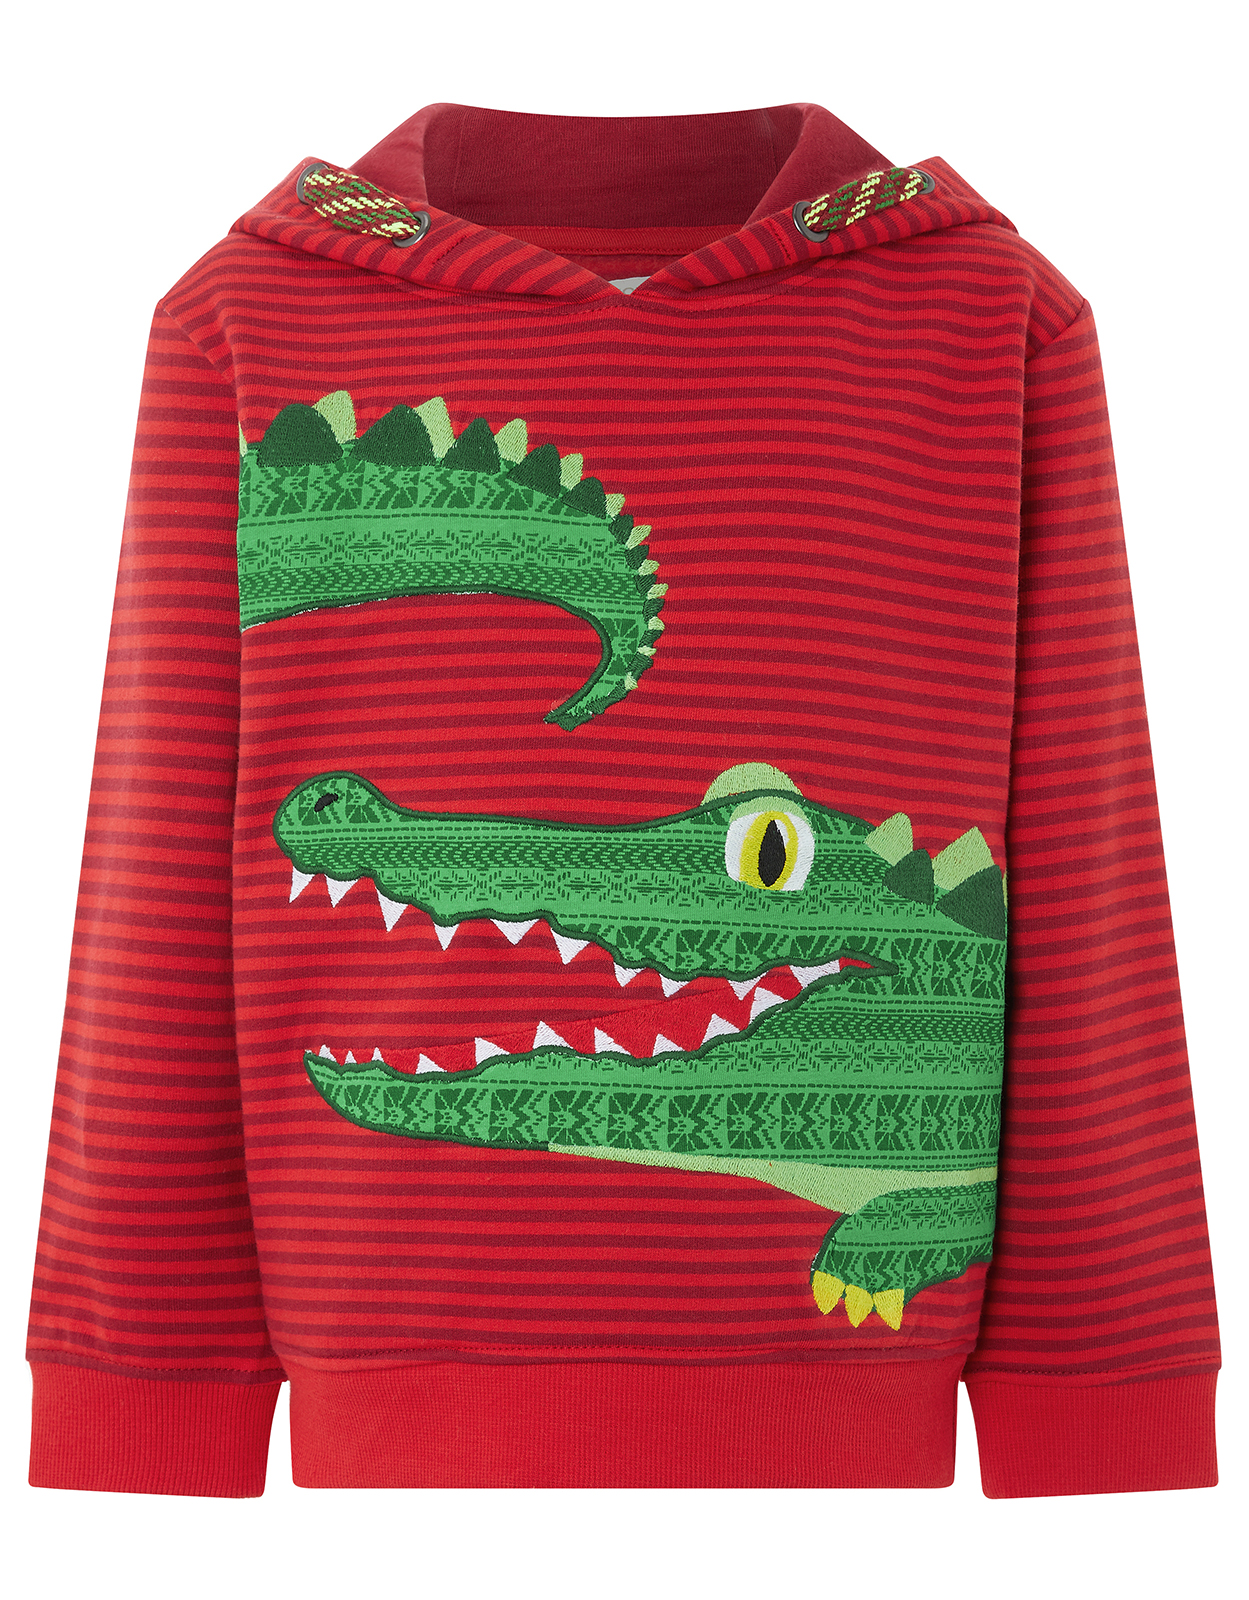 Monsoon Ashton Crocodile Hooded Jumper